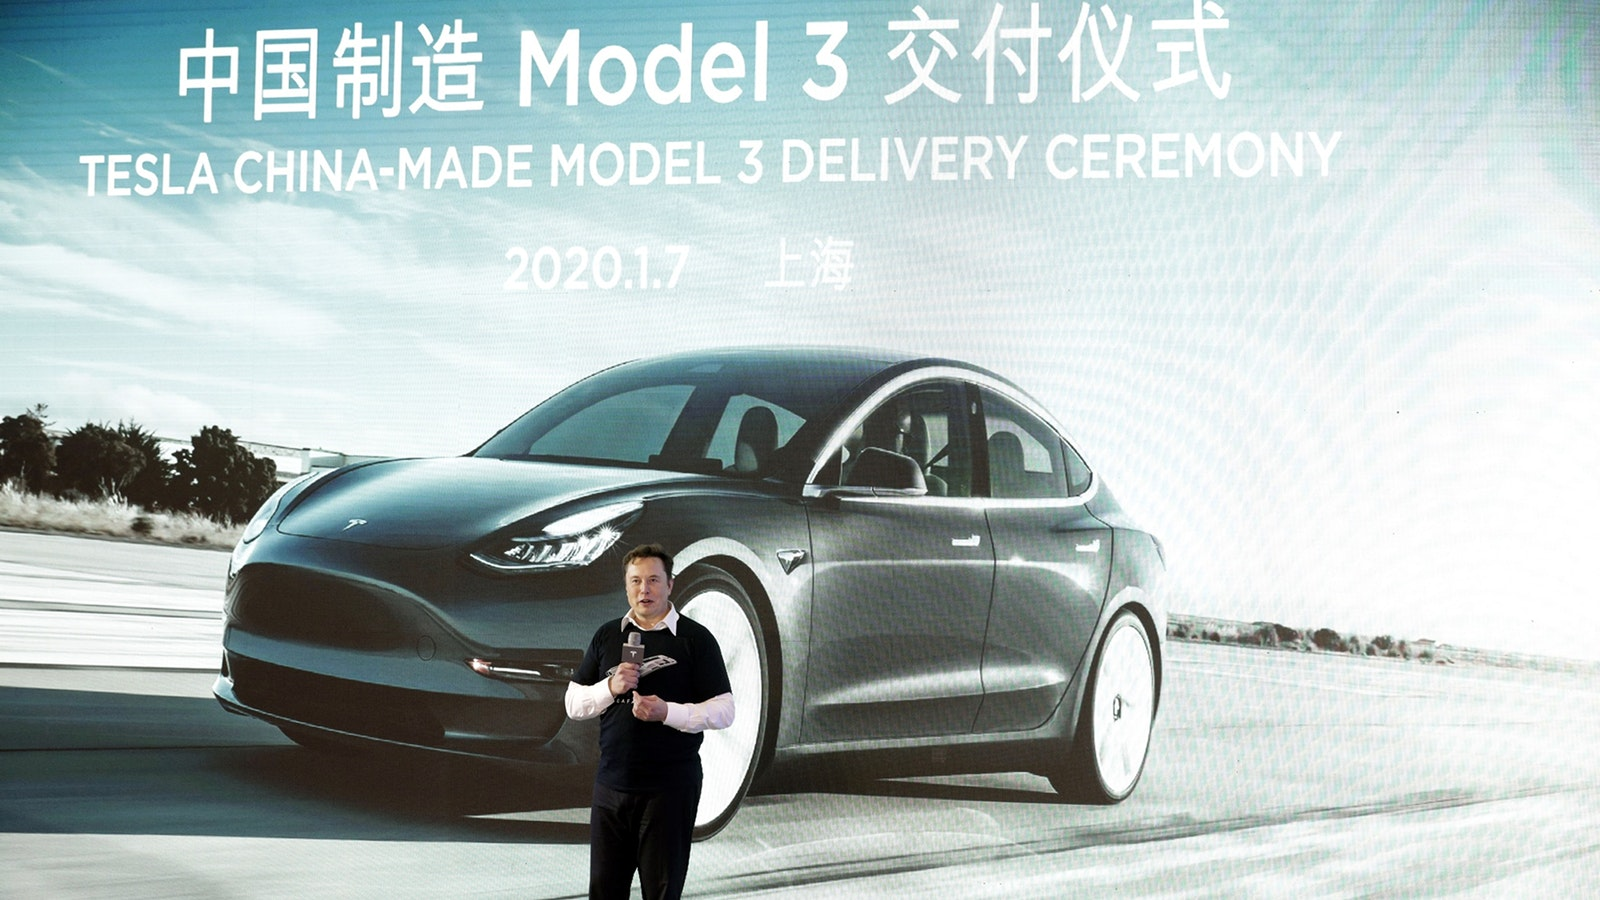 Elon Musk speaks during the Tesla China-Made Model 3 Delivery Ceremony at the company's Gigafactory in Shanghai, China, in January 2020. Photo by Bloomberg.